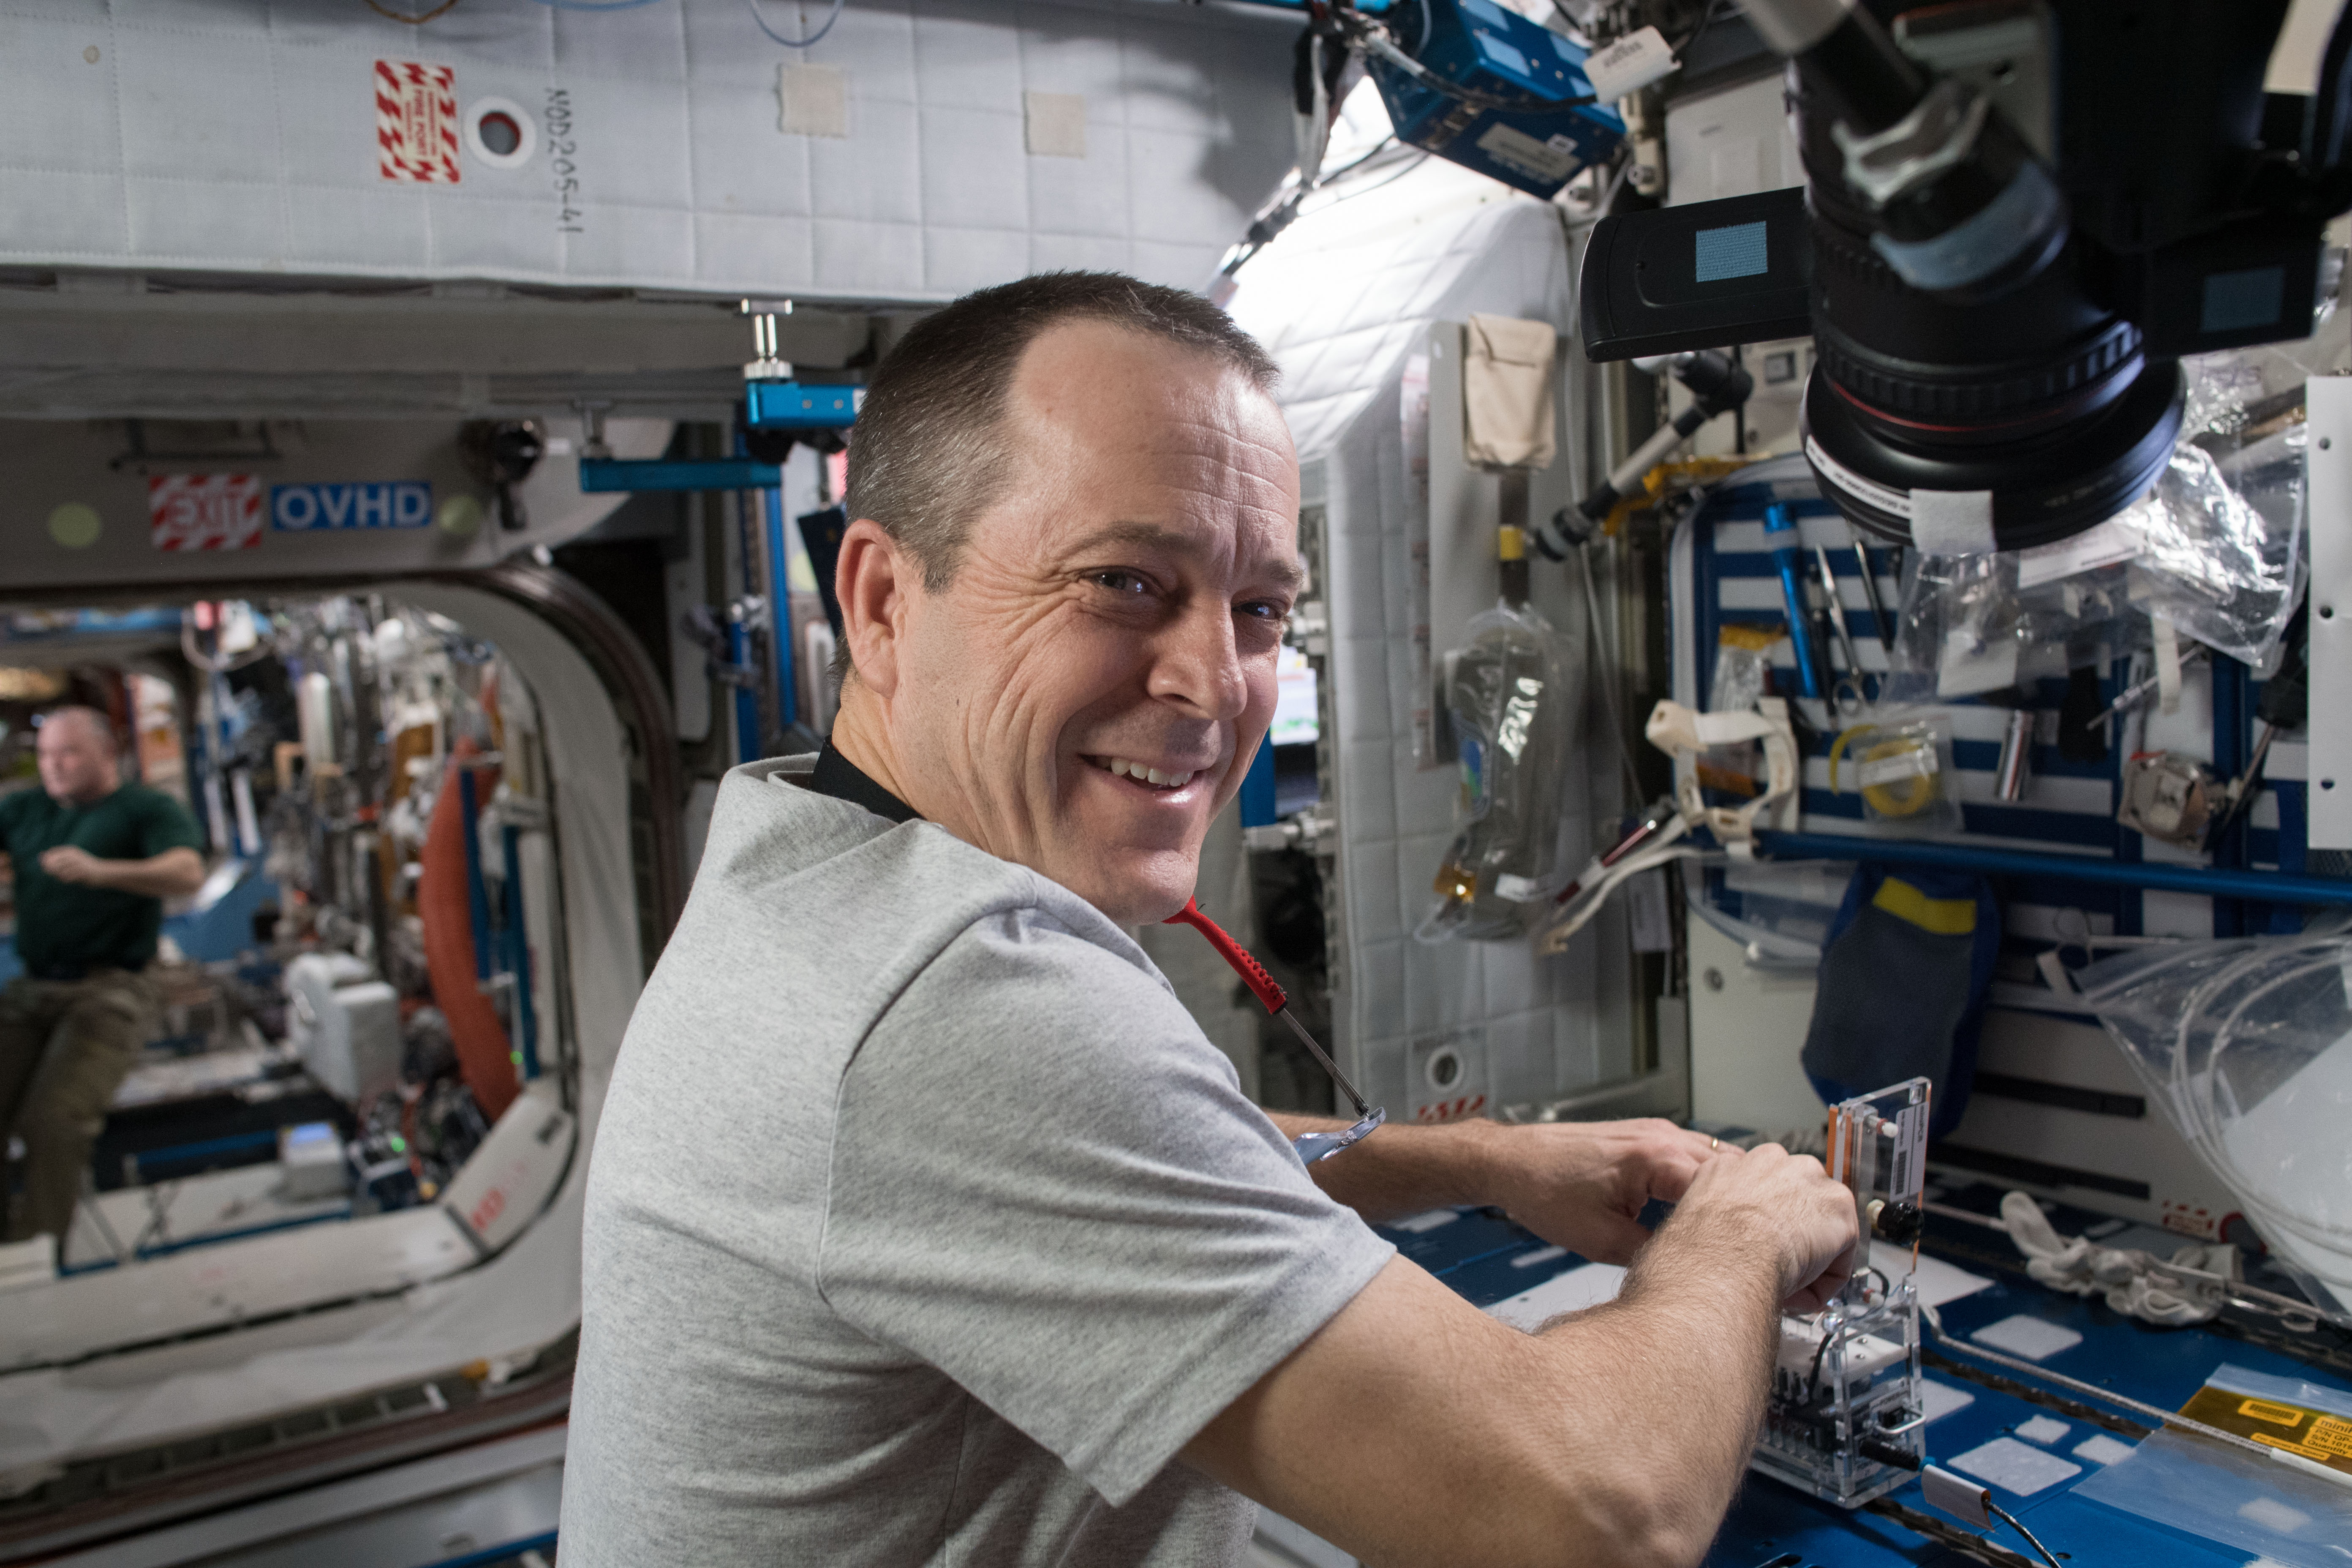 Astronaut-Educator Ricky Arnold Conducts Science on Station | NASA